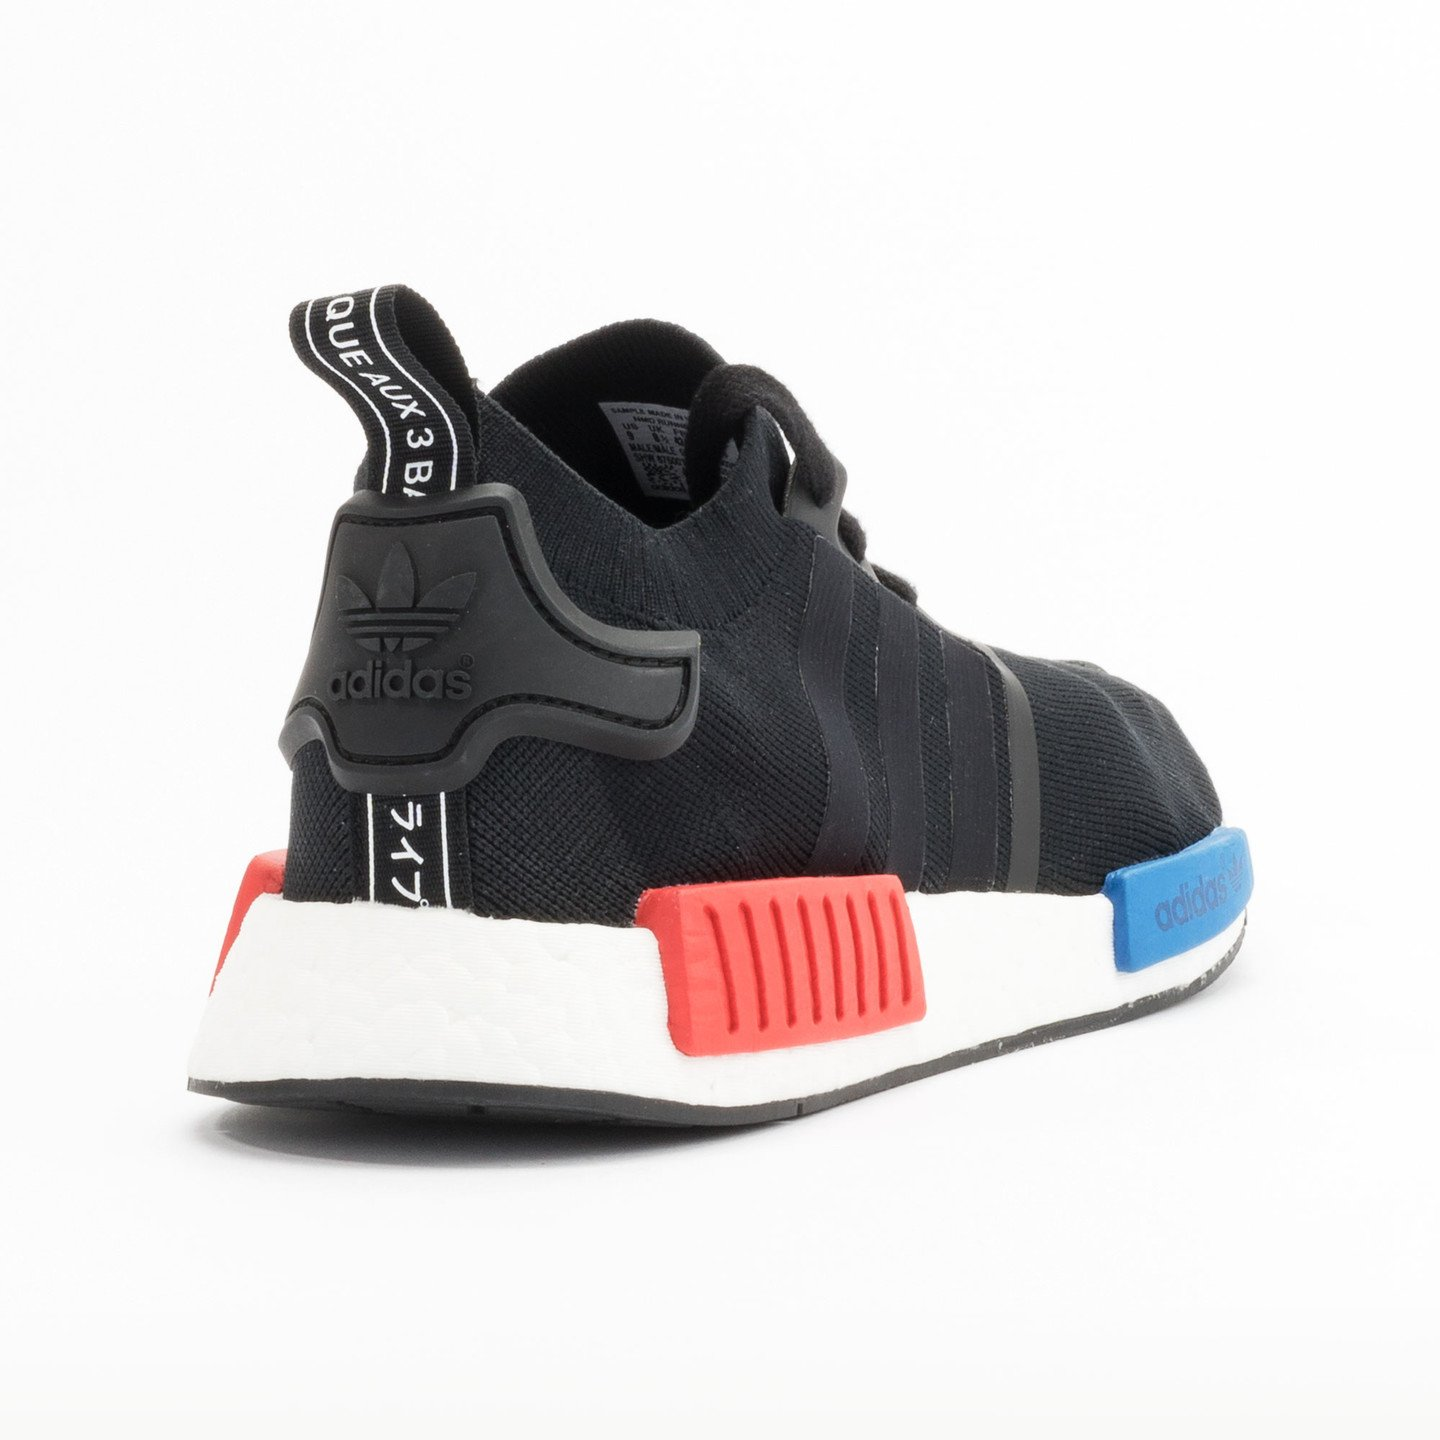 yjmypc Adidas NMD Runner PK - Primeknit Boost Nomad | Black / Red / Blue